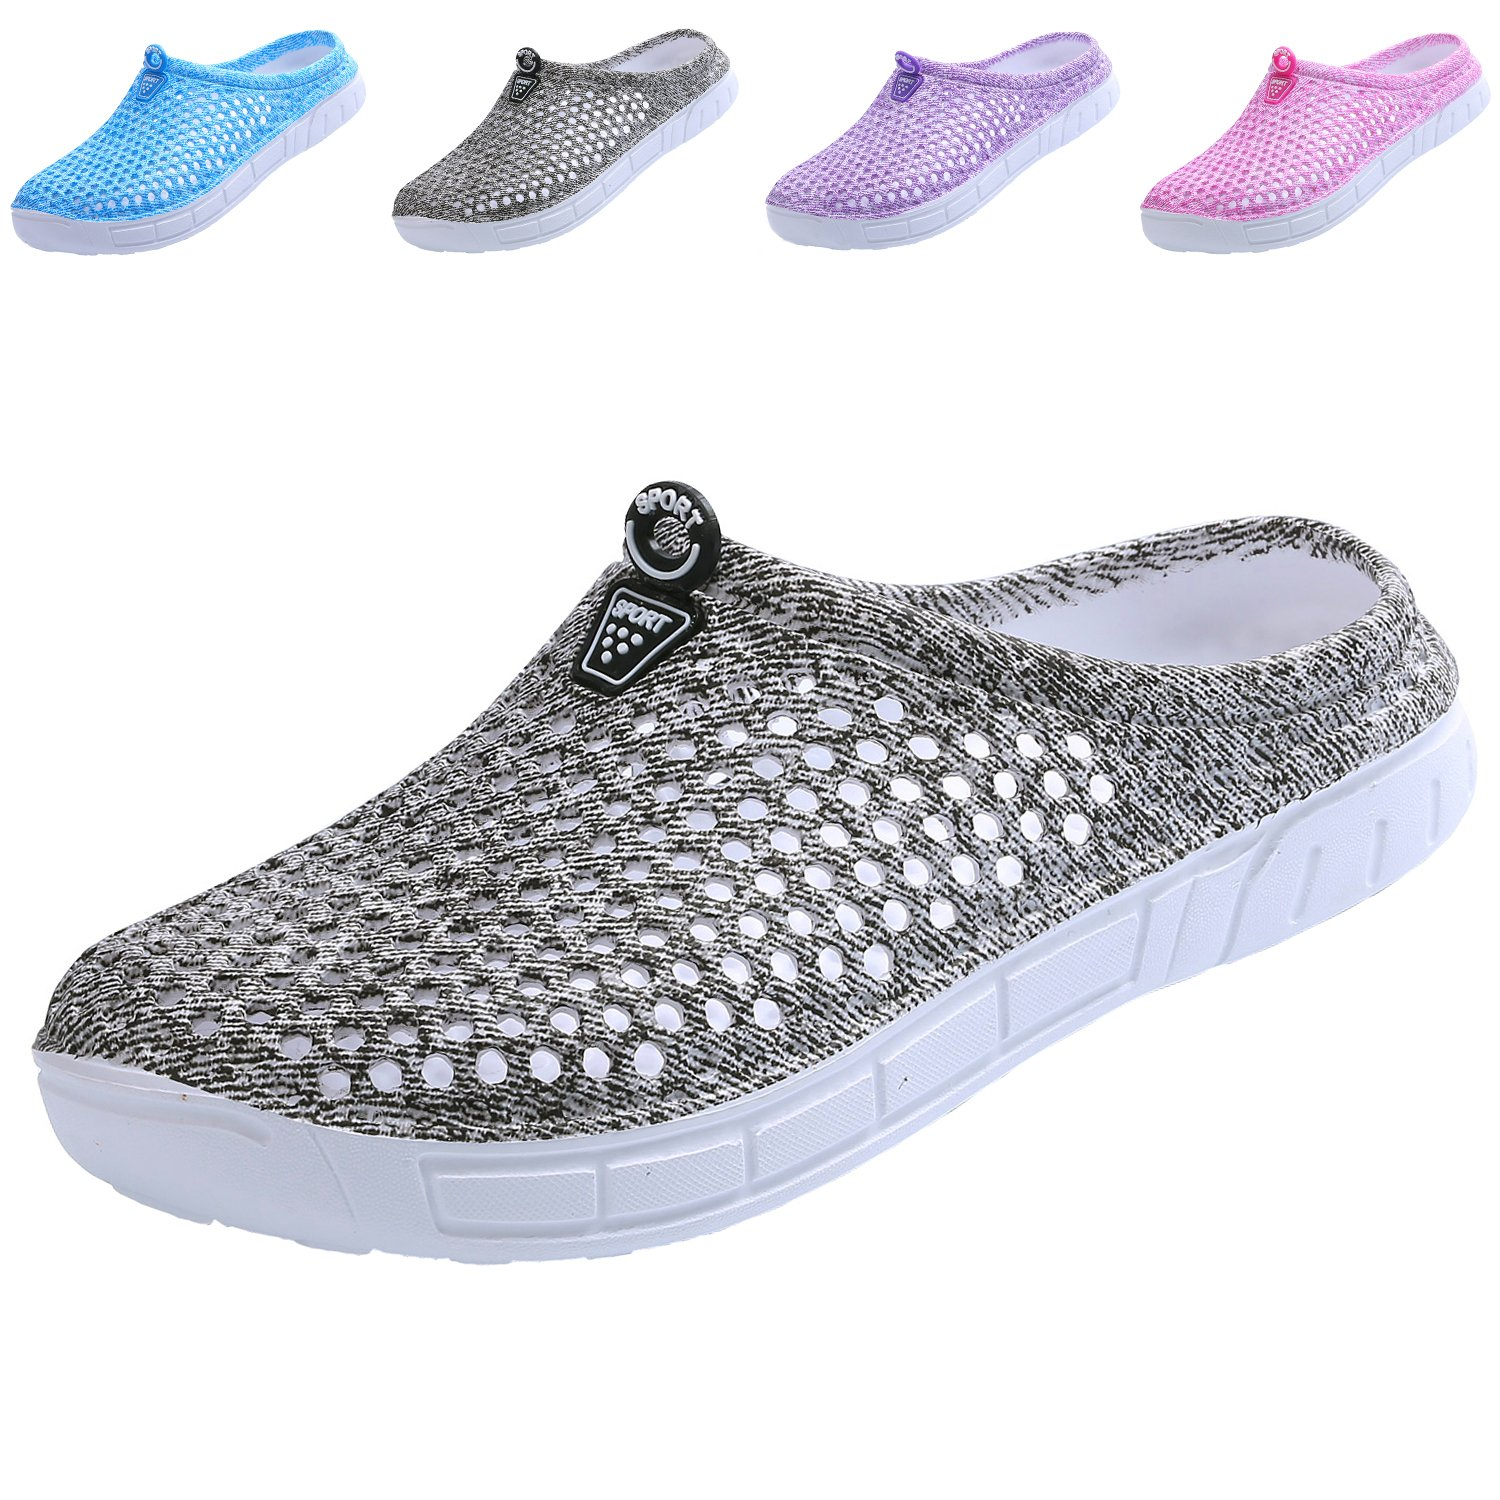 clootess Women Garden Clogs Shoes Slippers Sandals Quick Drying Walking Ladies House Room Indoor Outdoor Shower Sport Home Summer Breathable Light EVA 5.5 B(M) US JD-Grey 36